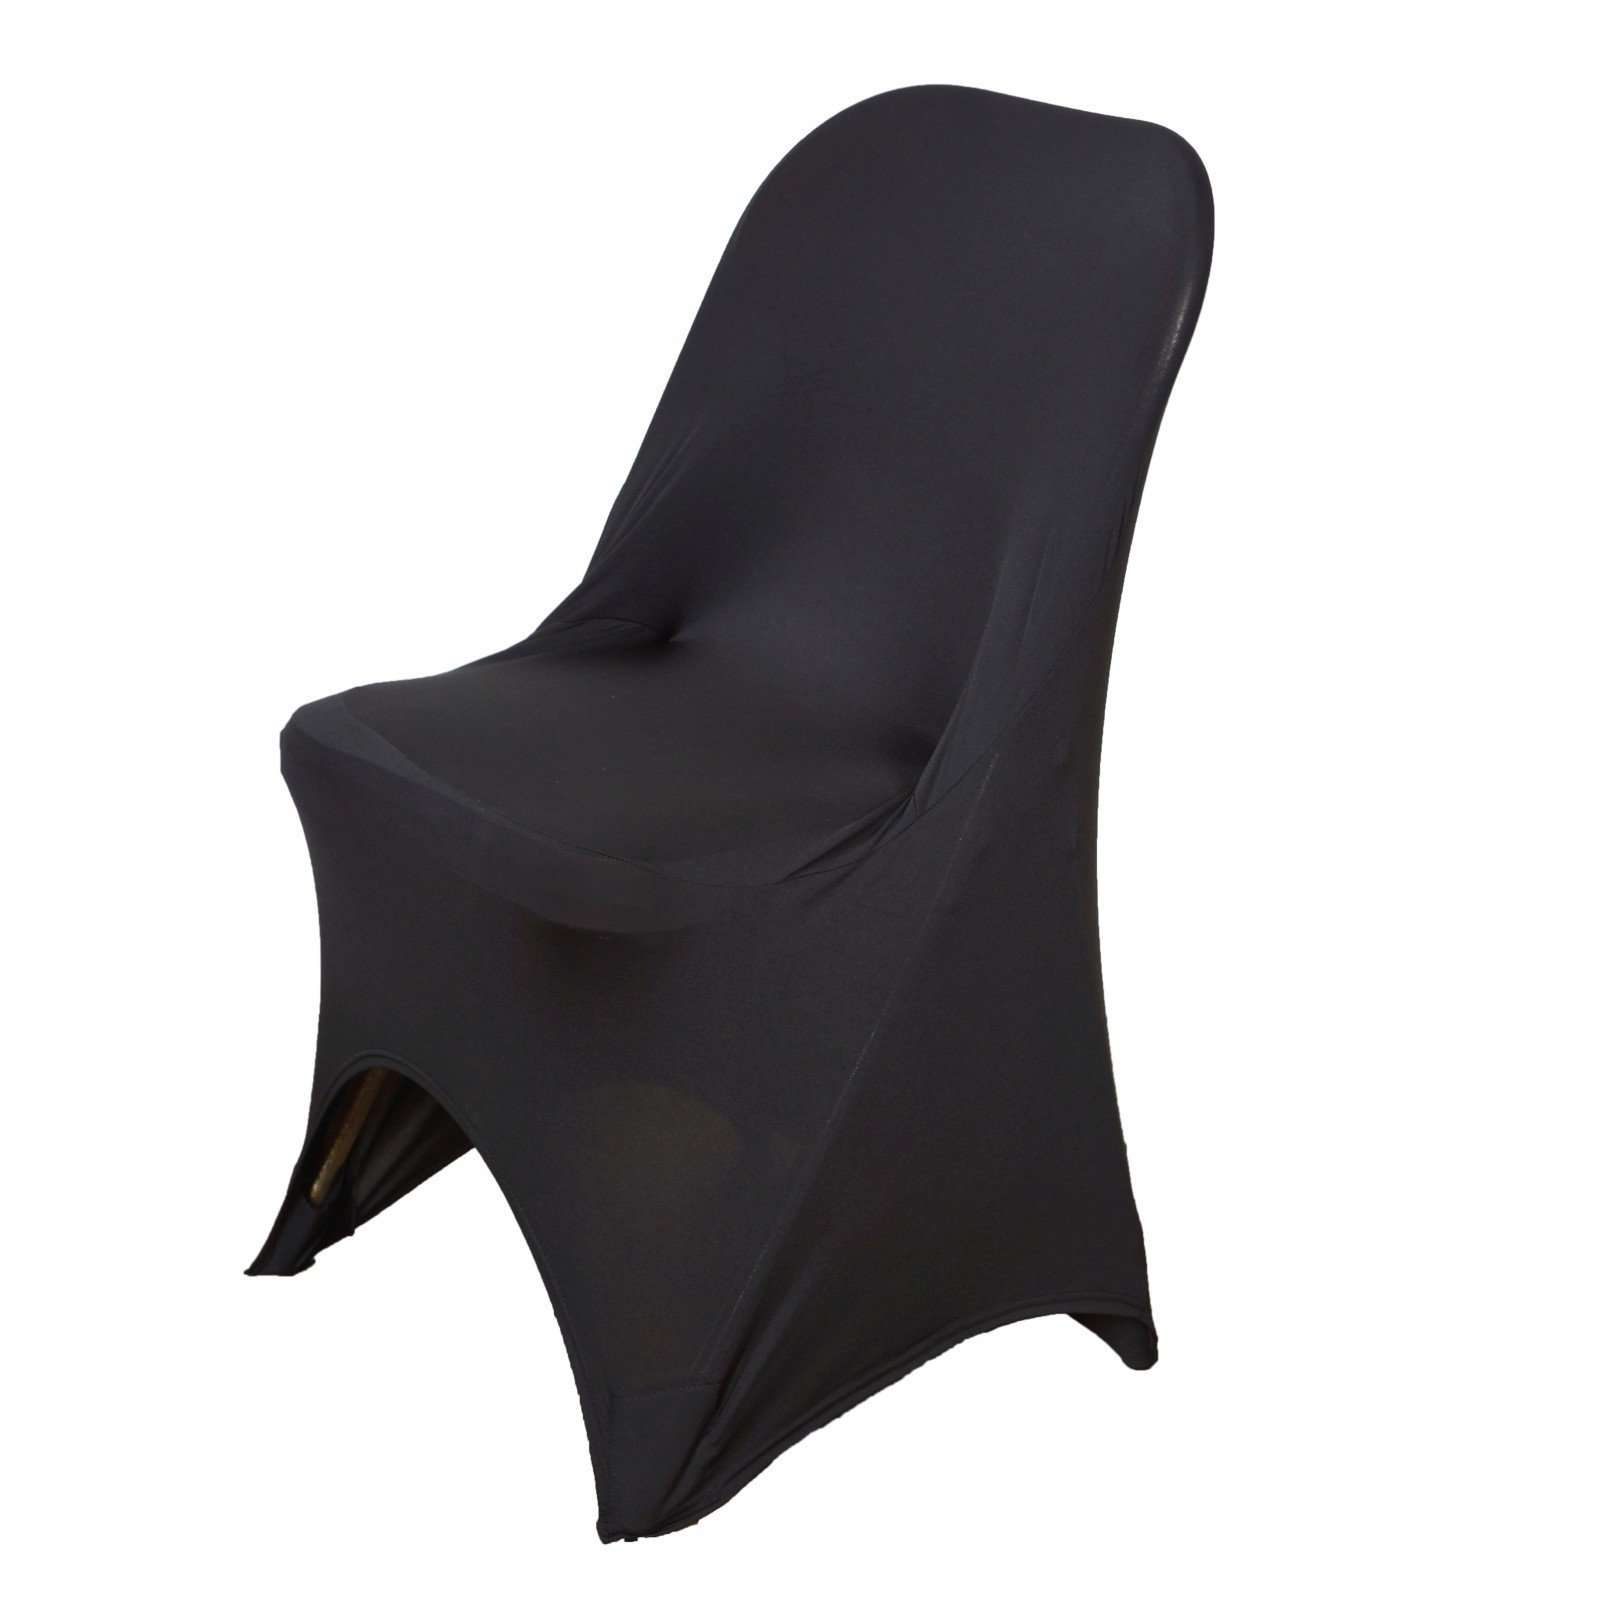 Magnificent Wholesale Black Spandex Stretch Folding Chair Cover Wedding Party Event Chaircoverfactory Camellatalisay Diy Chair Ideas Camellatalisaycom